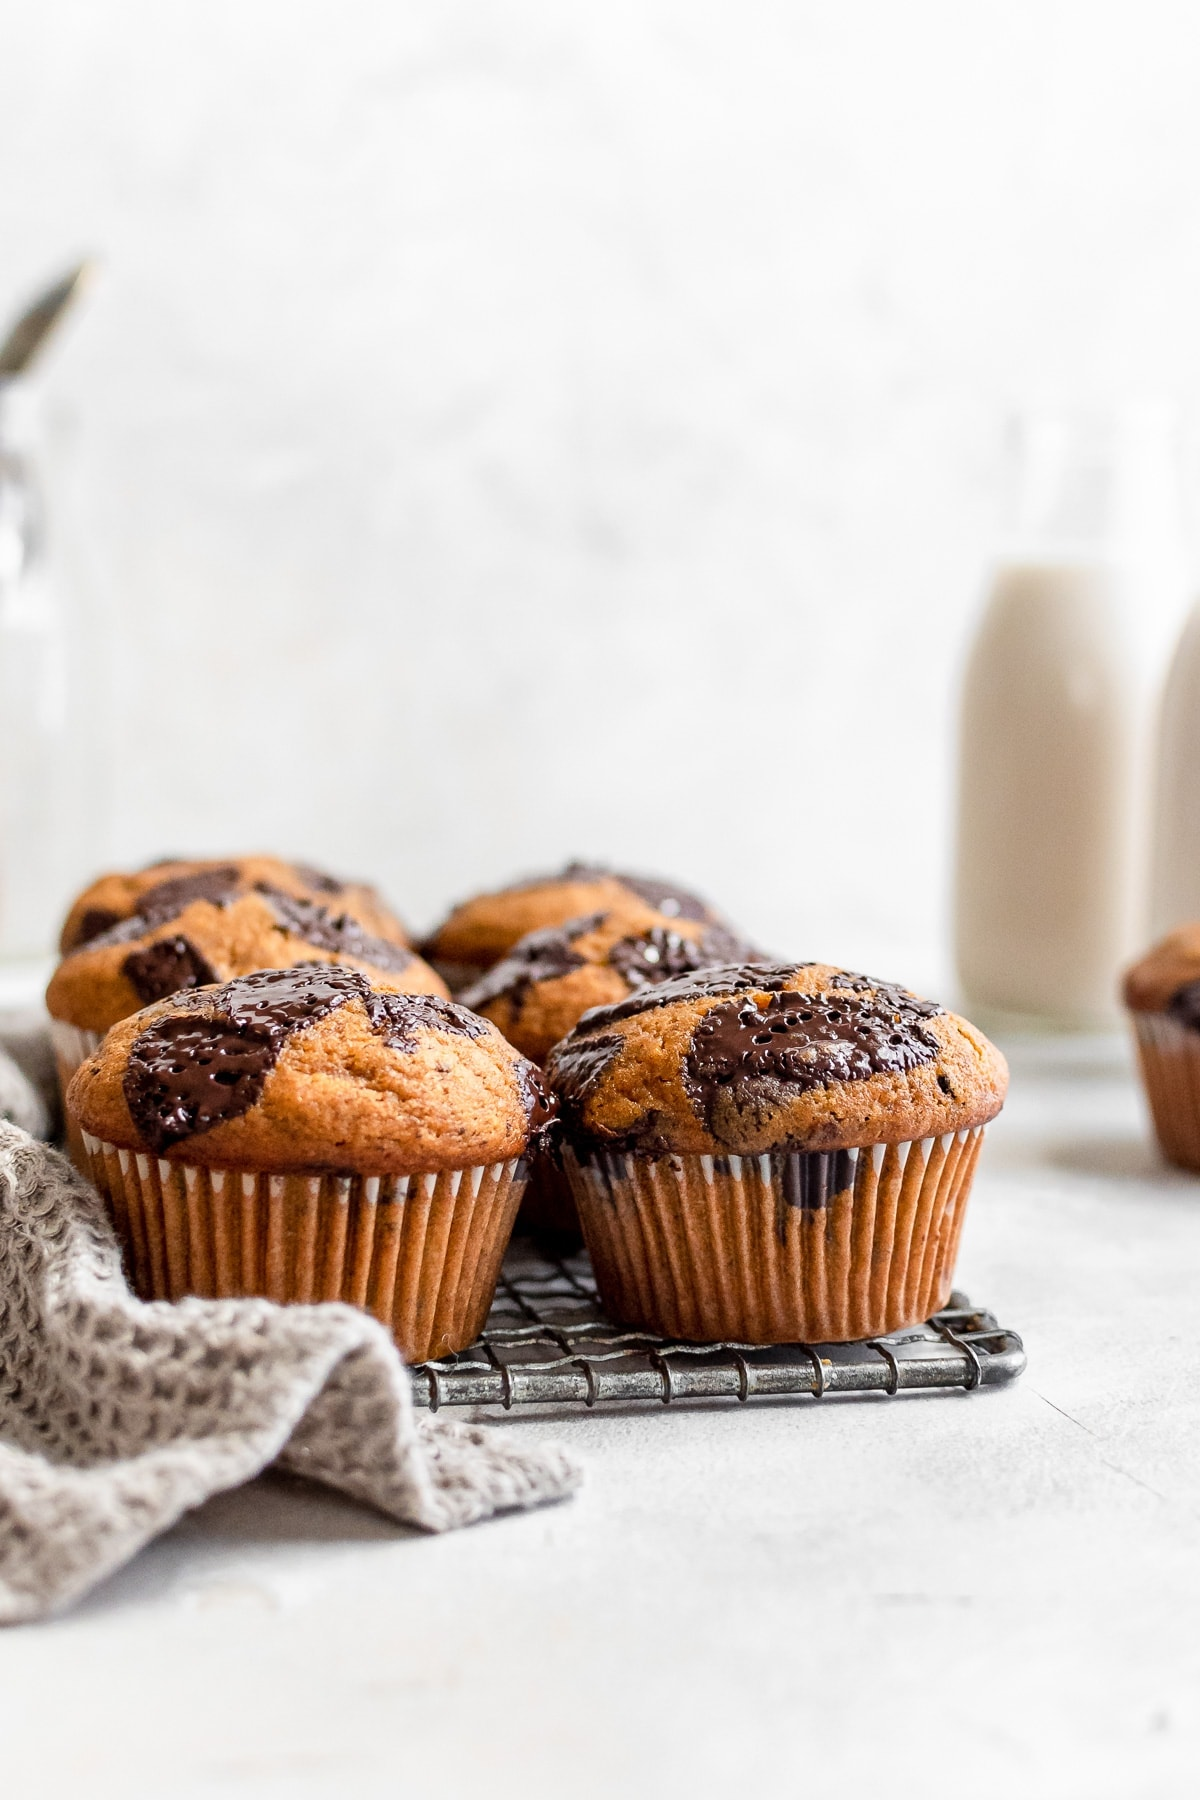 pumpkin muffins on wire rack with milk bottle in background